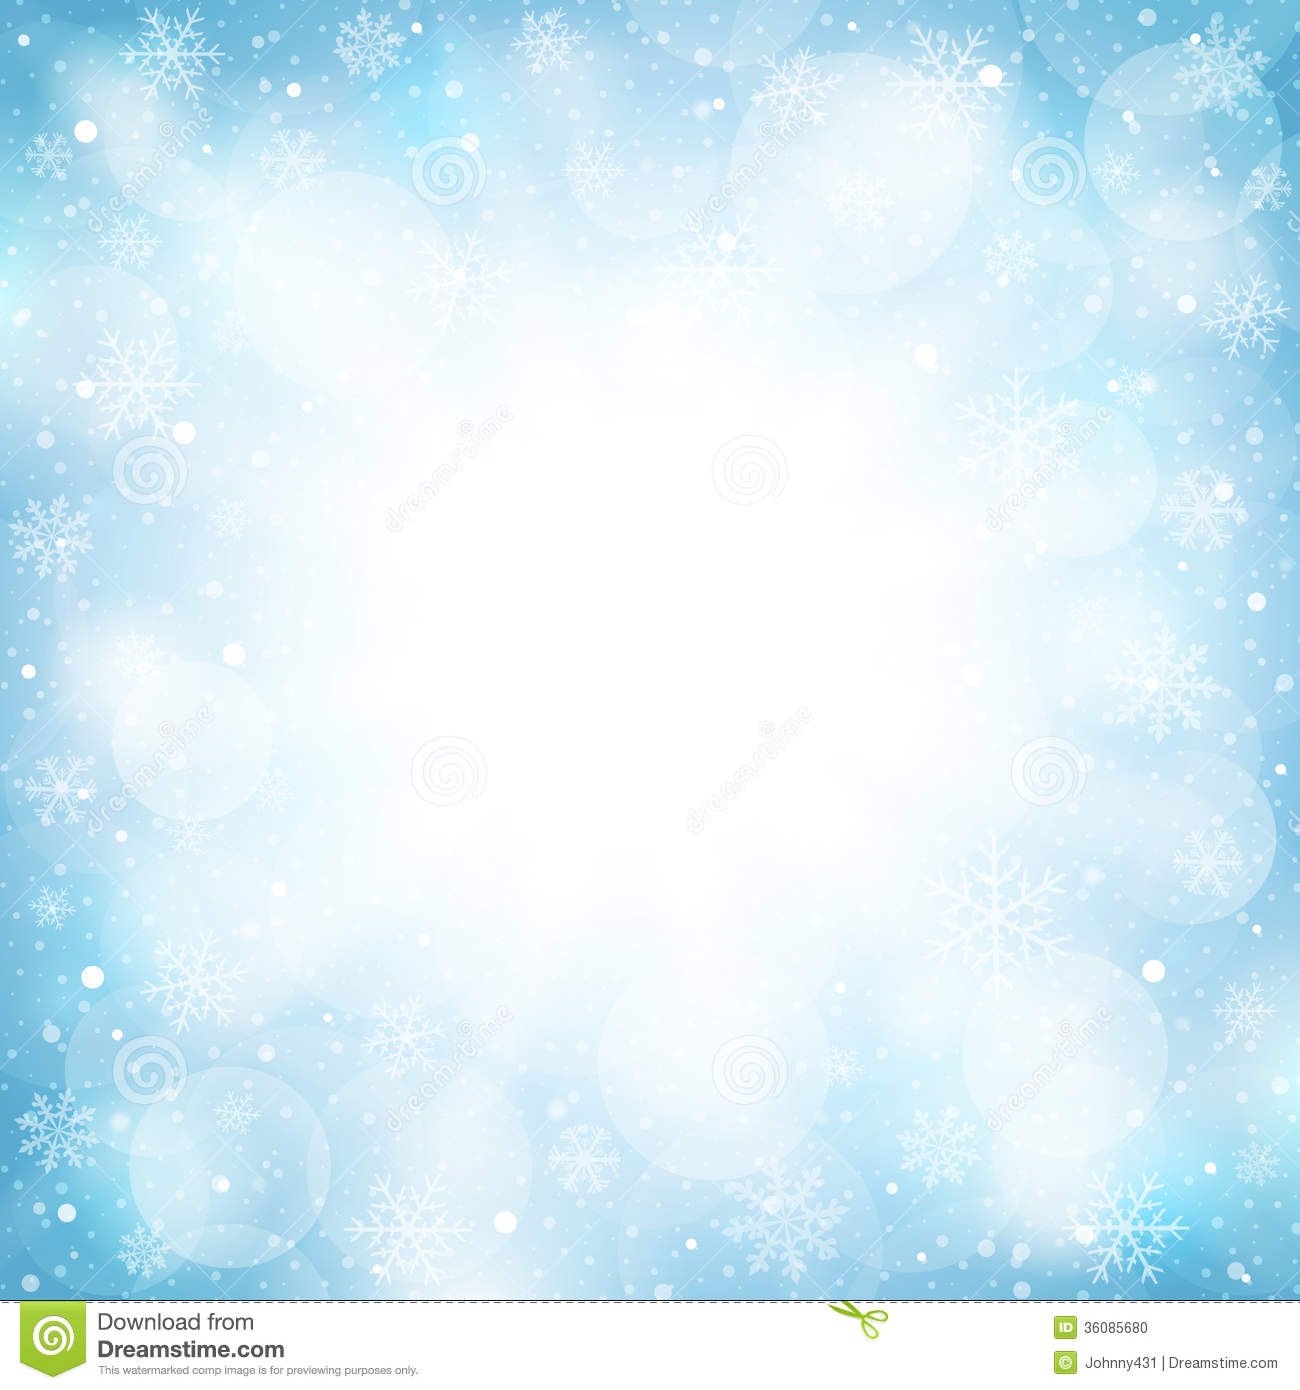 Free Falling Snow Wallpaper Download Ice Background Stock Photo Image 36085680